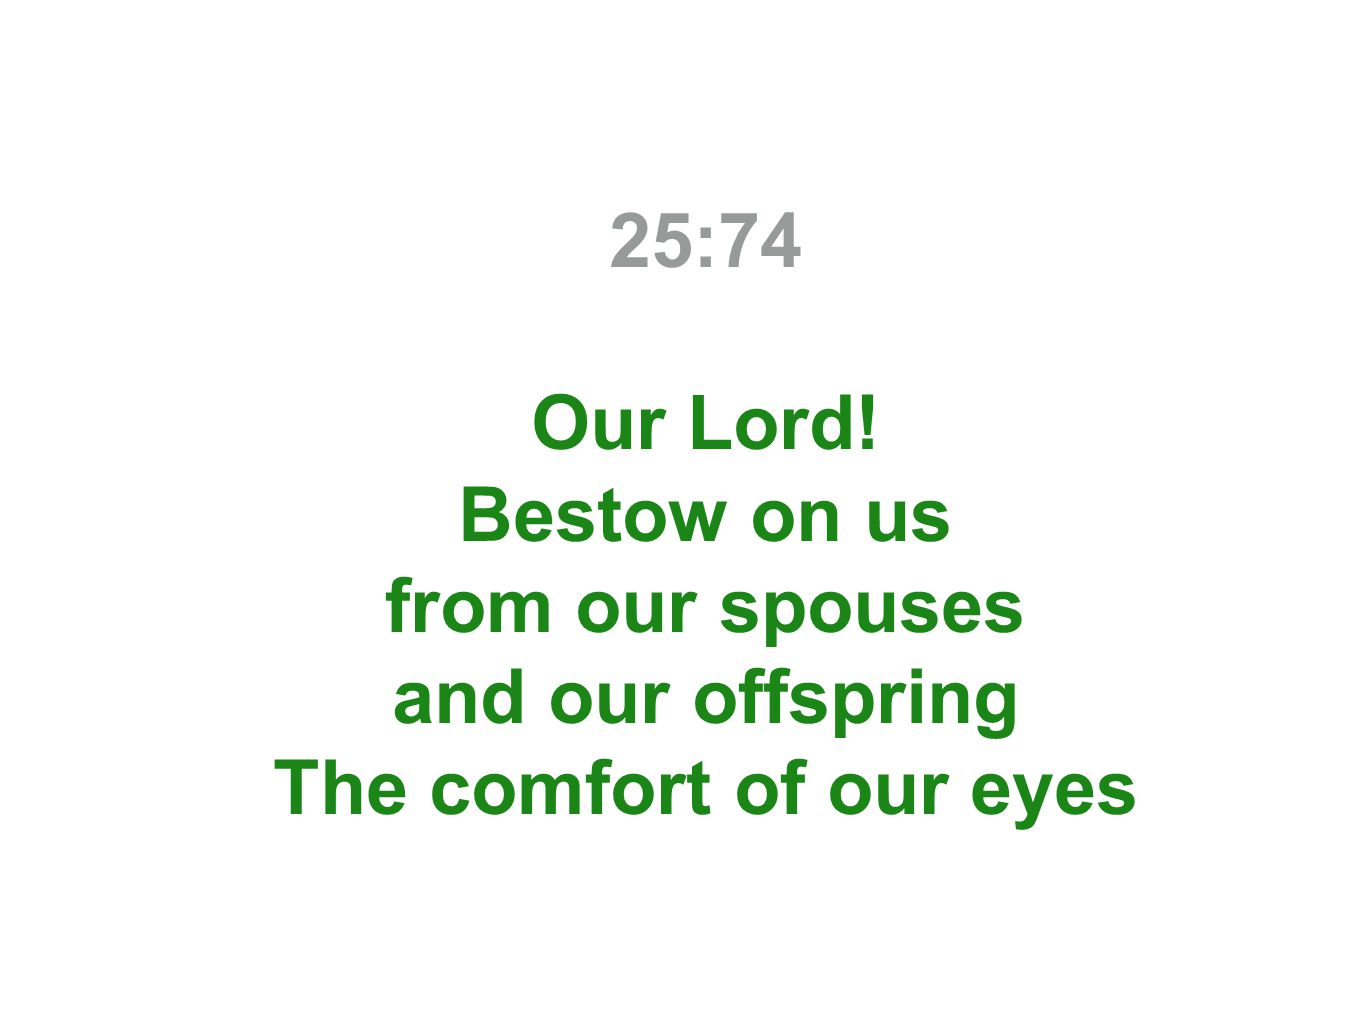 25:74 Our Lord! Bestow on us from our spouses and our offspring The comfort of our eyes